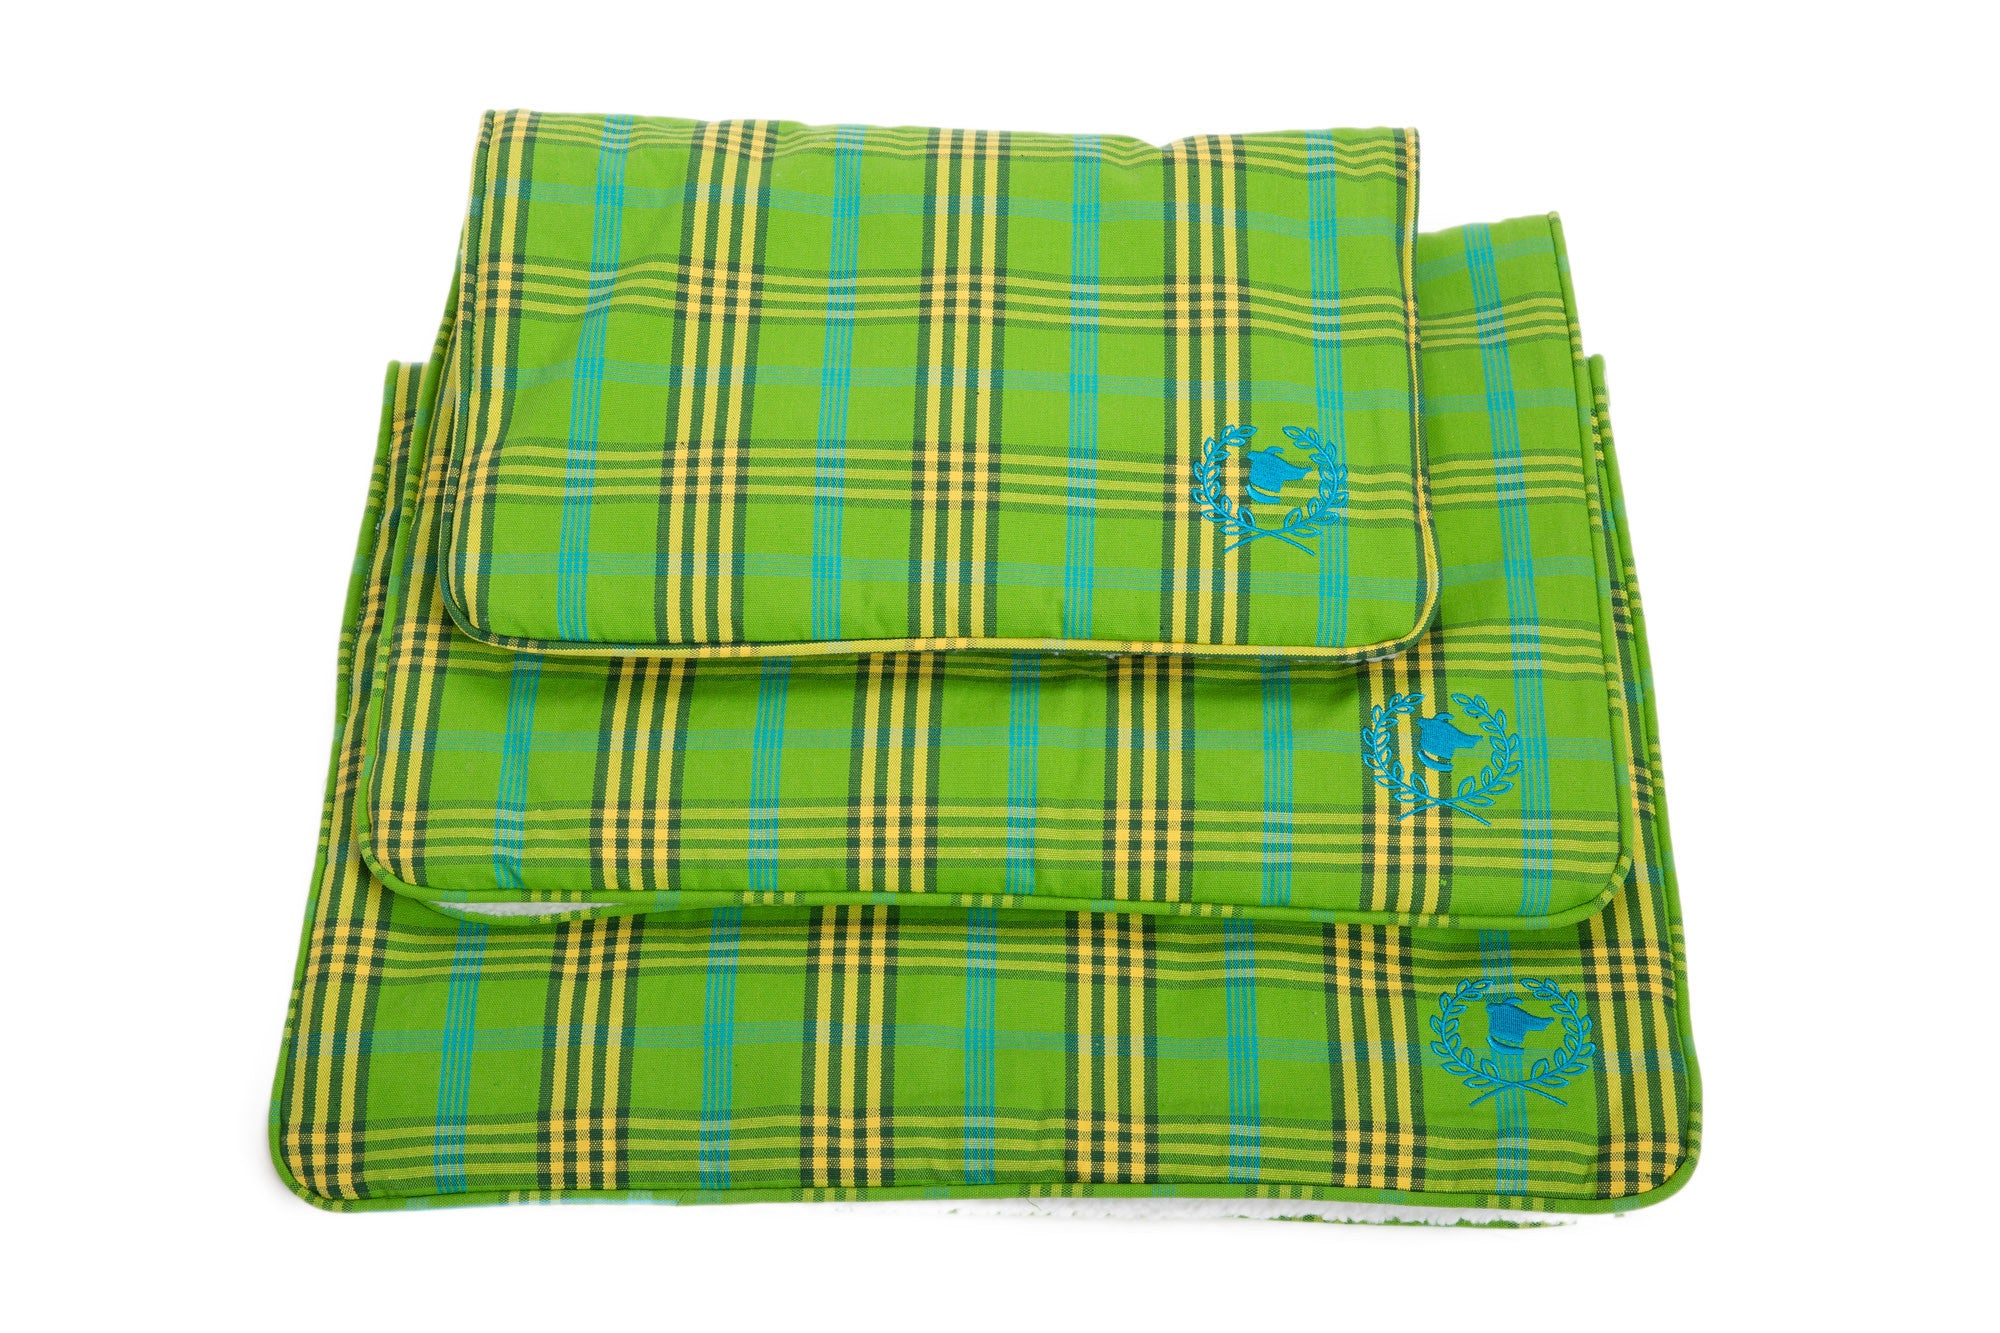 Canine Styles - Crate Mat - Signature Green Plaid - Dog Bed